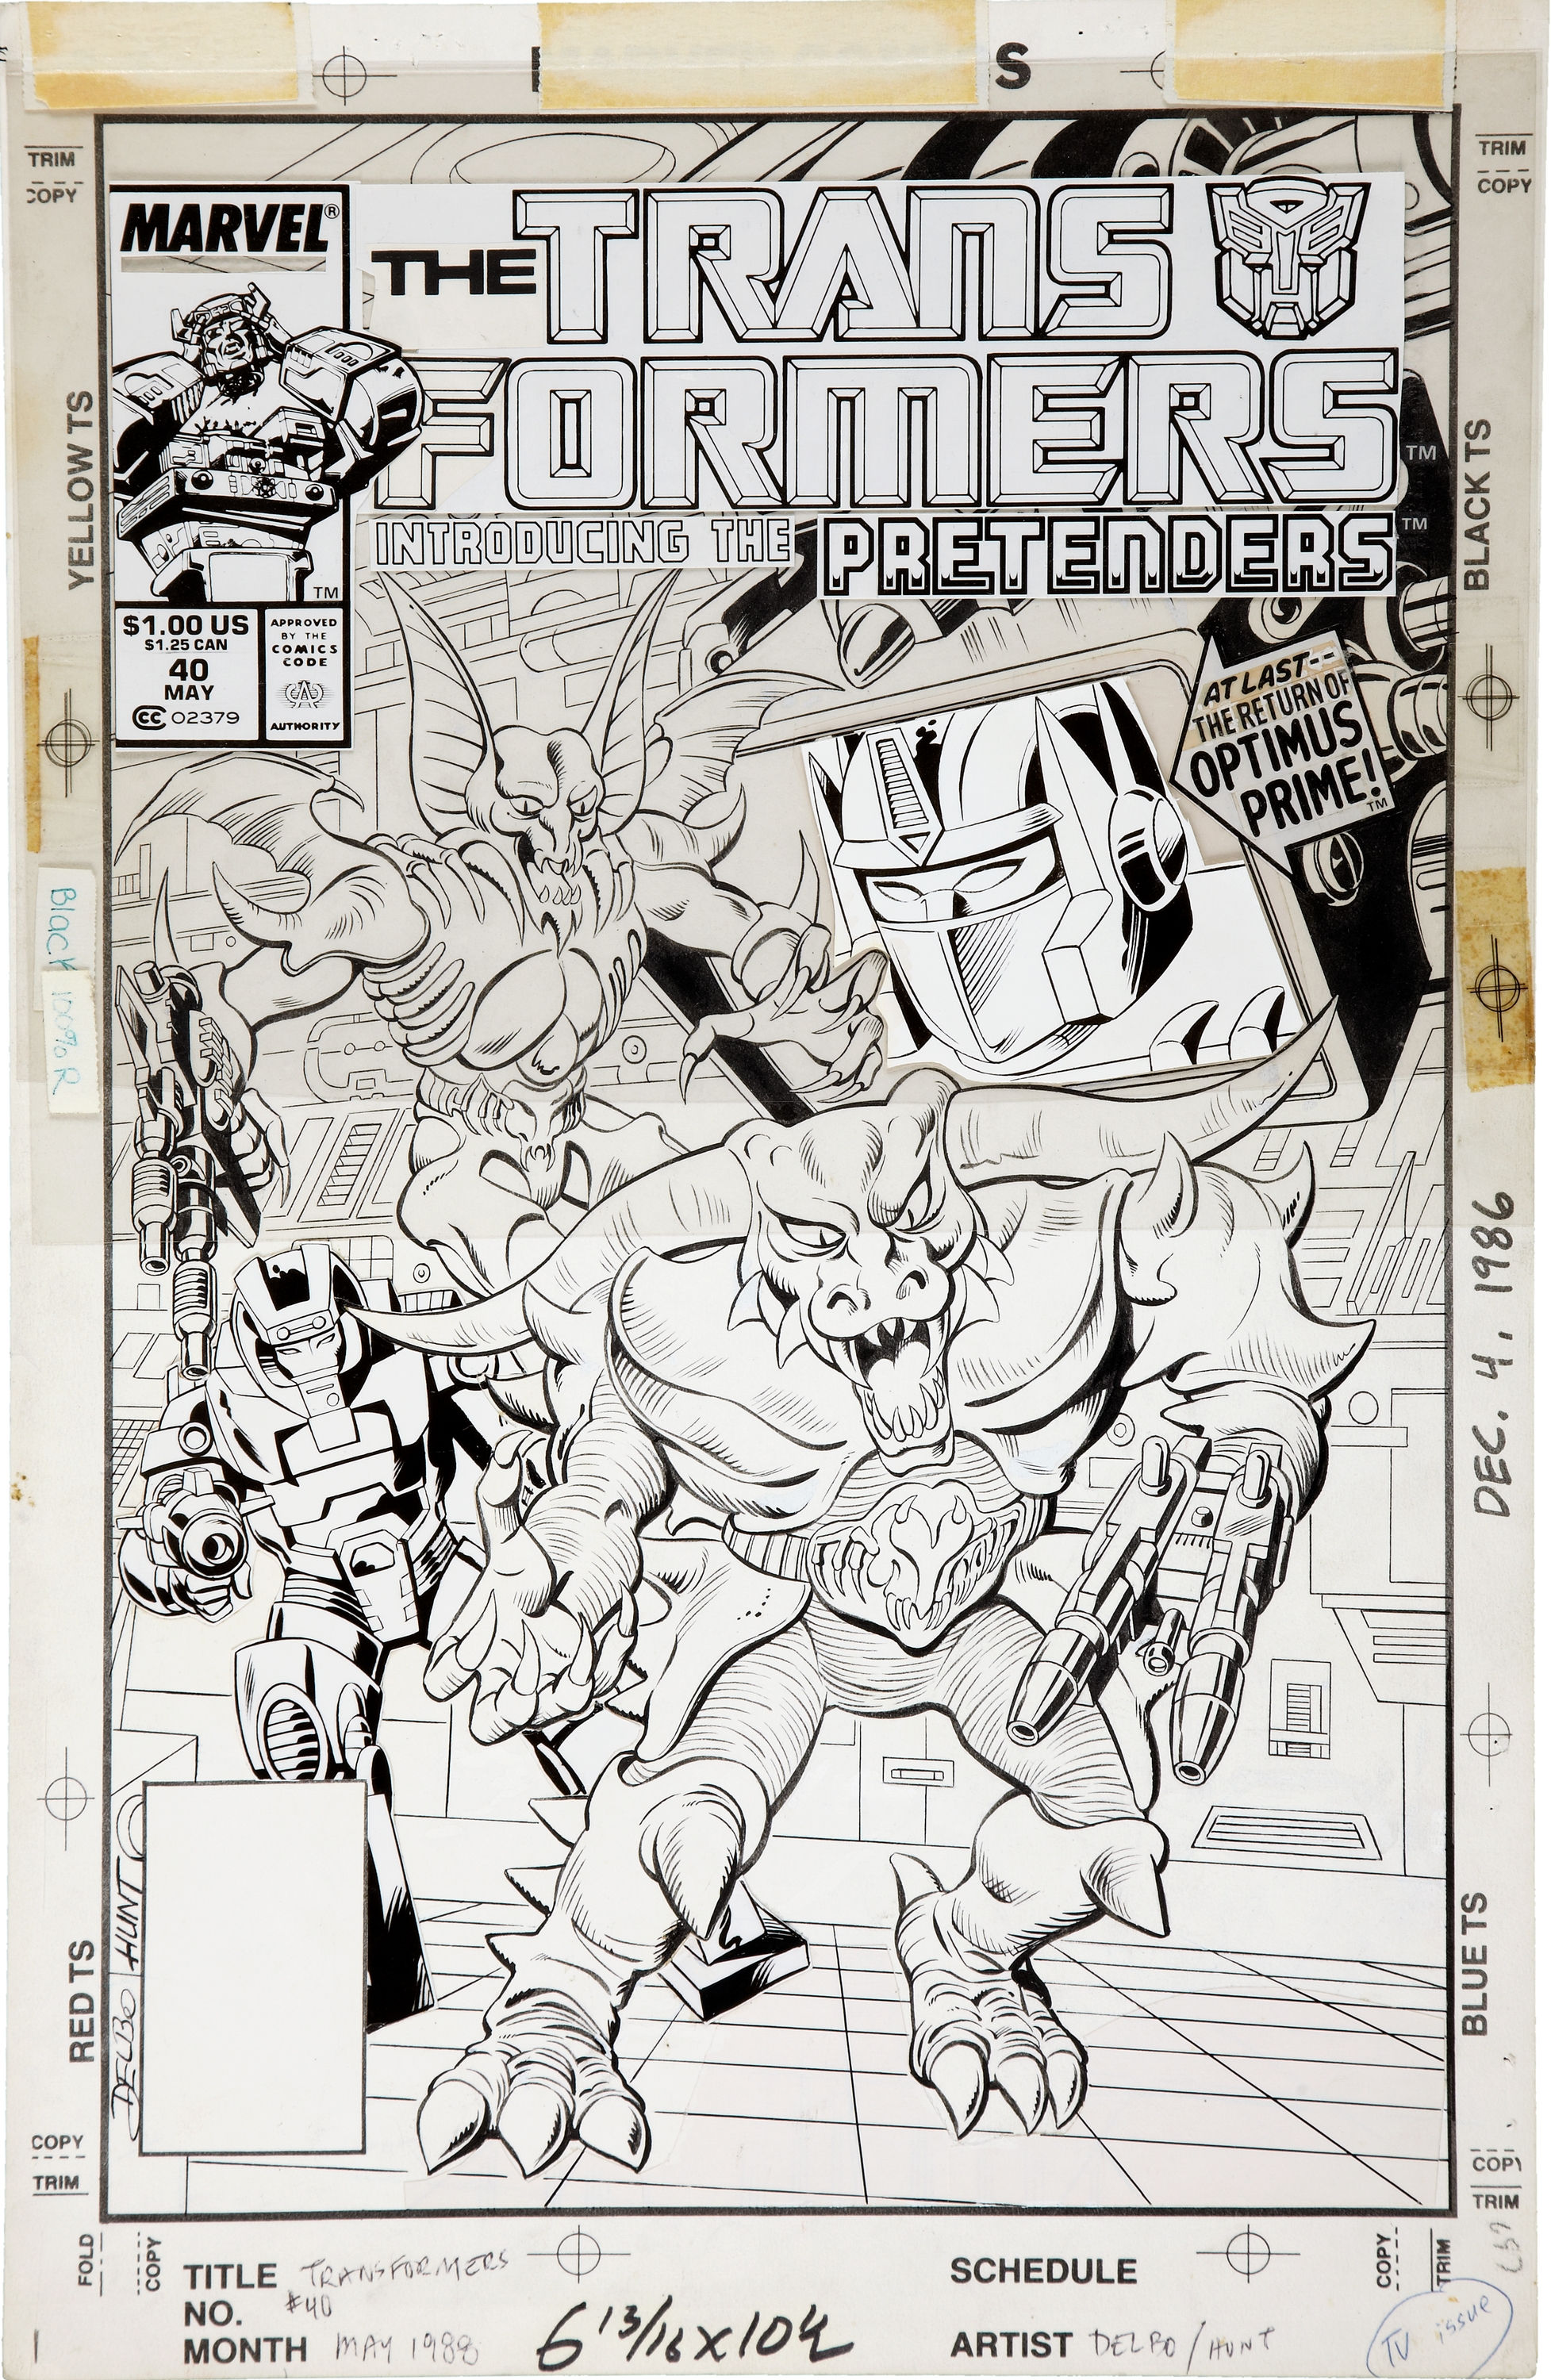 Be Nelson Yomtov! (Colorists, Tackle an Original Transformers Marvel Comics Page!)-jose-20delbo-20transformers-2040-20page.jpg